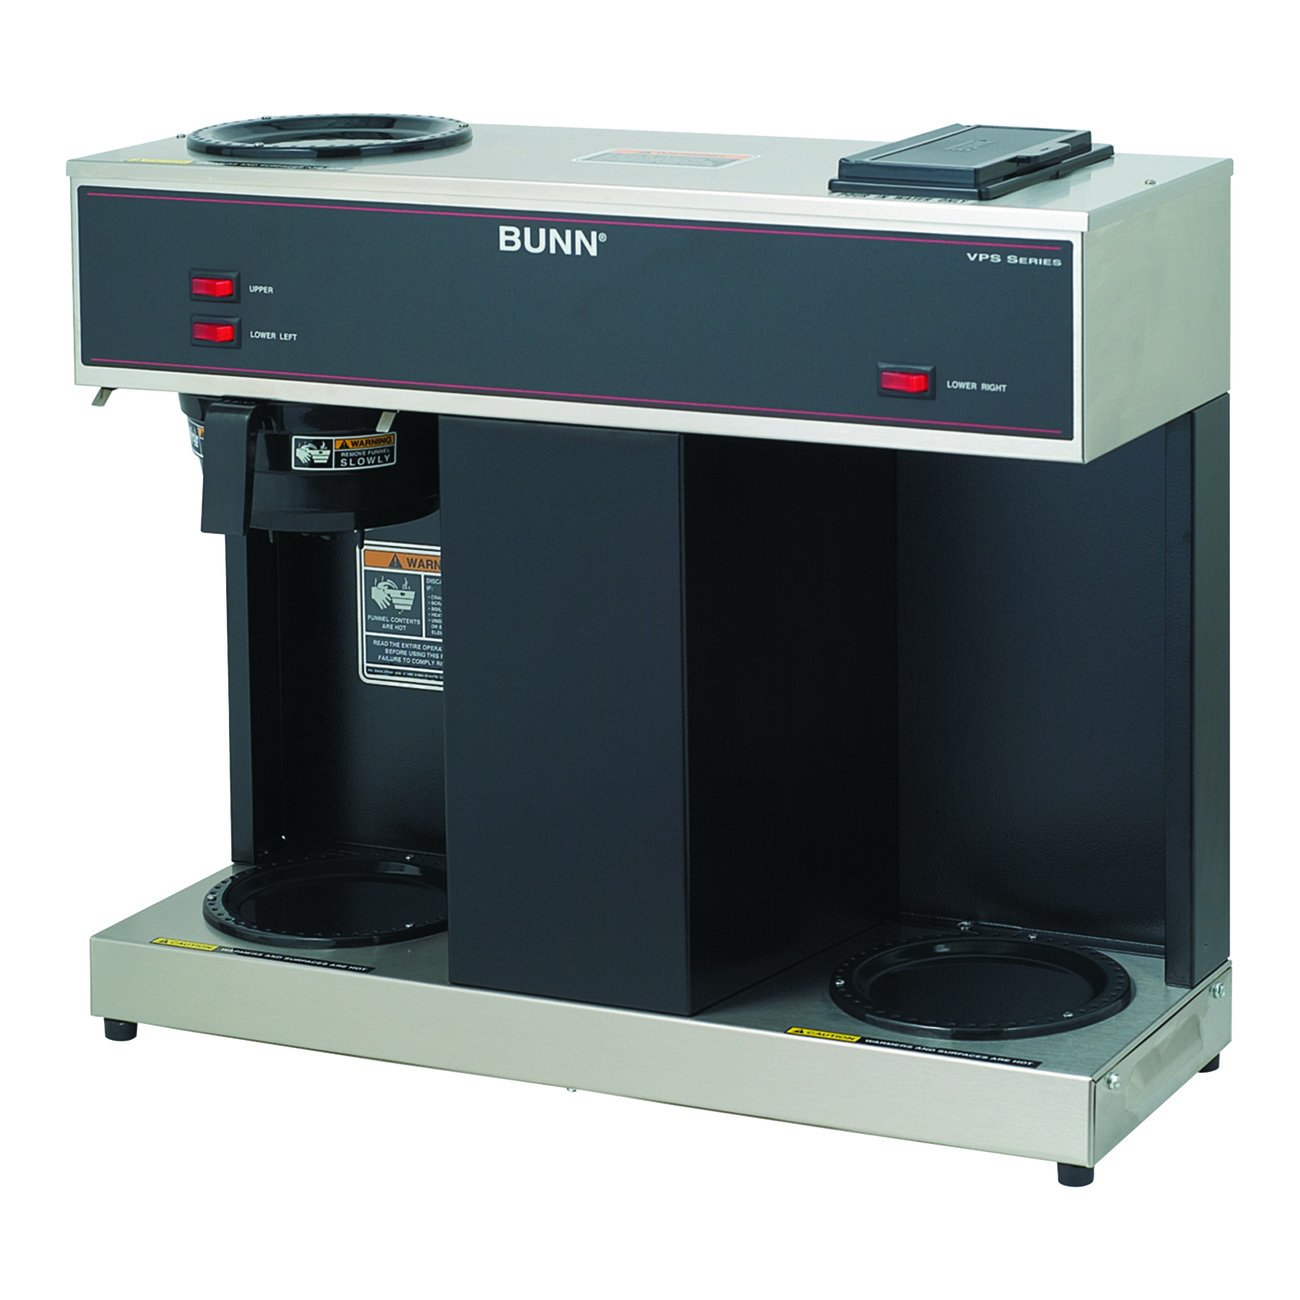 BUNN 04275.0031 VPS 12-Cup Pourover Commercial Coffee Brewer, with 3 Warmers (120V/60/1PH) by BUNN